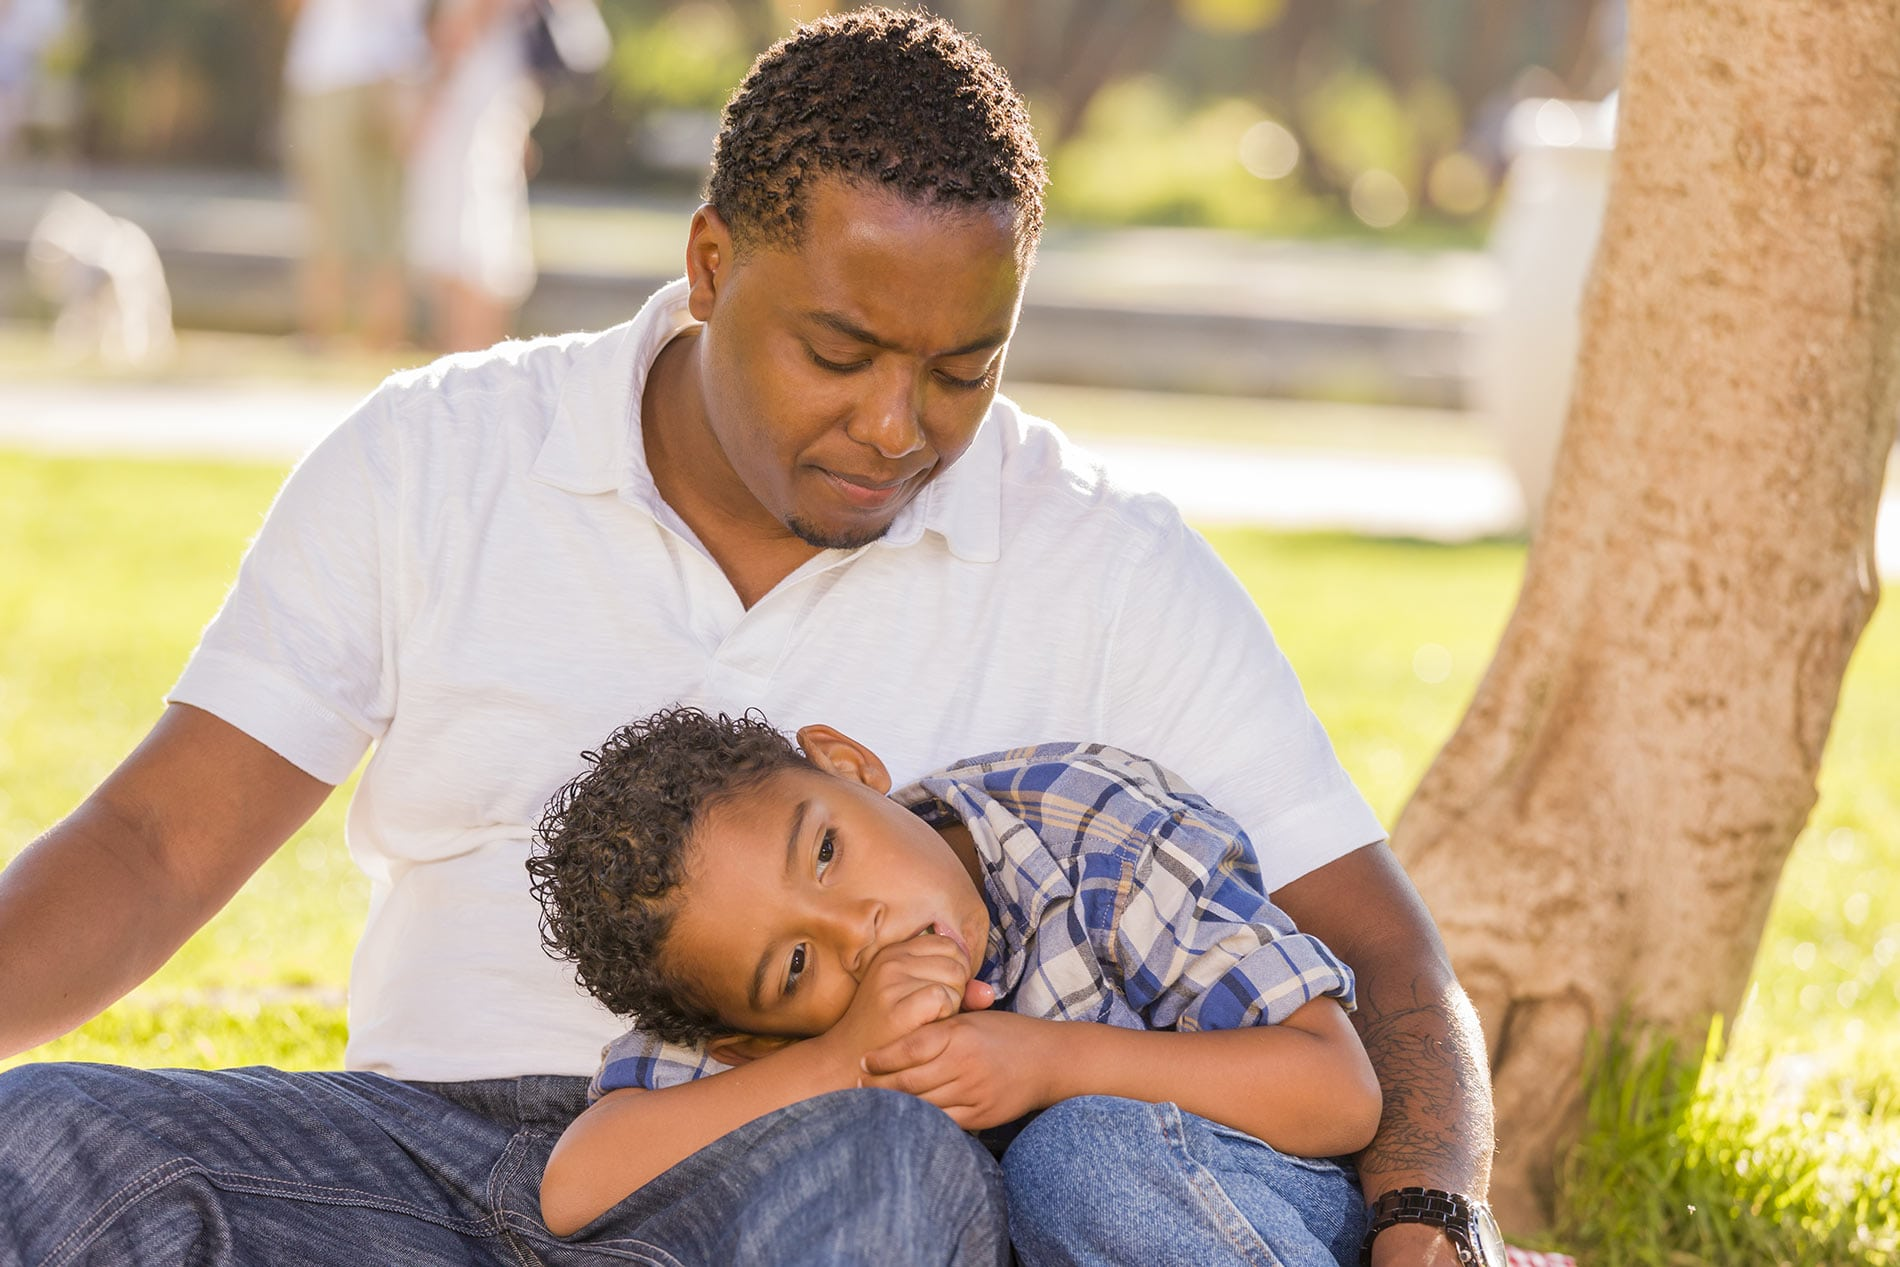 New Research Indicates Vaccines Are Safe - What Parents Should Consider